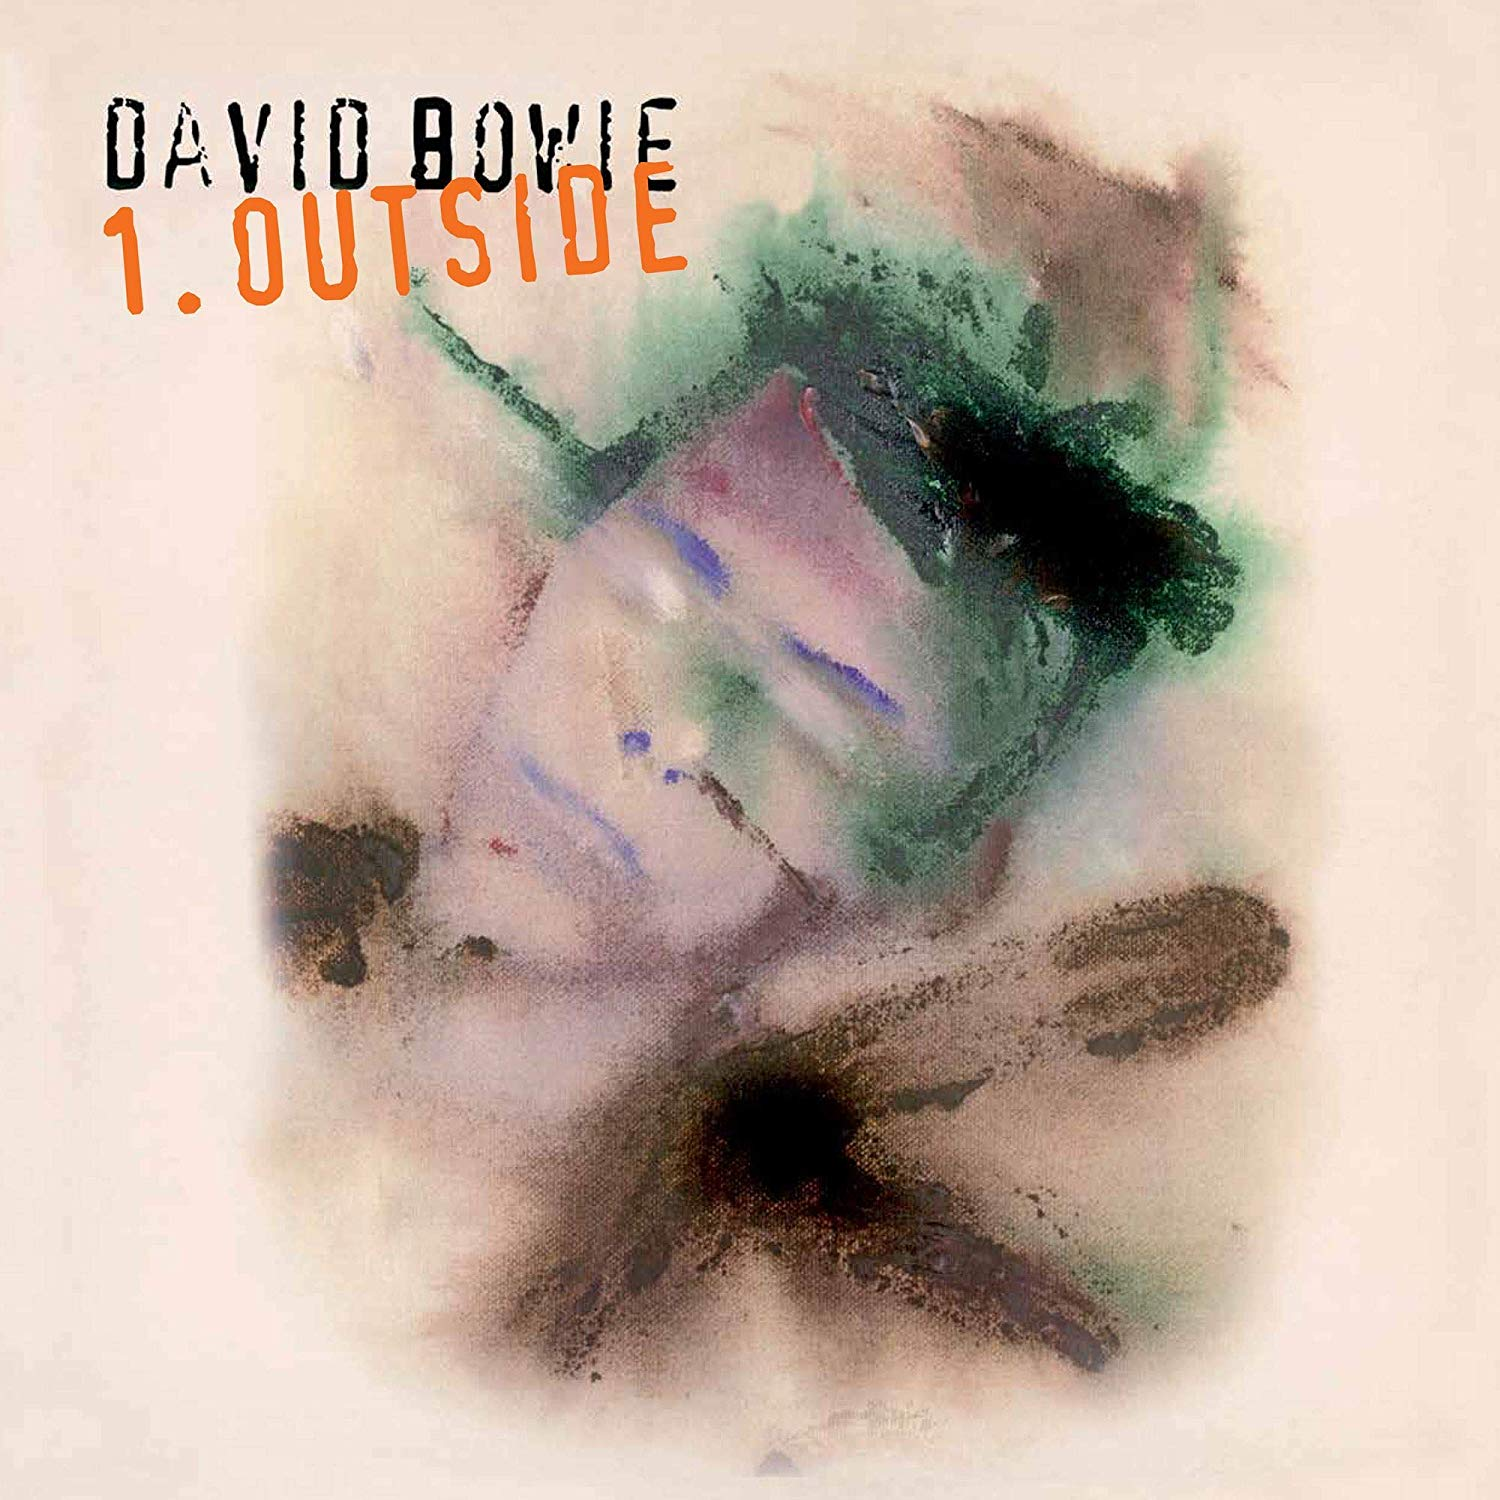 David Bowie - 1. Outside [Limited Edition Audiophile Translucent Blue & Green Swirl Tri-Fold Cover LP]